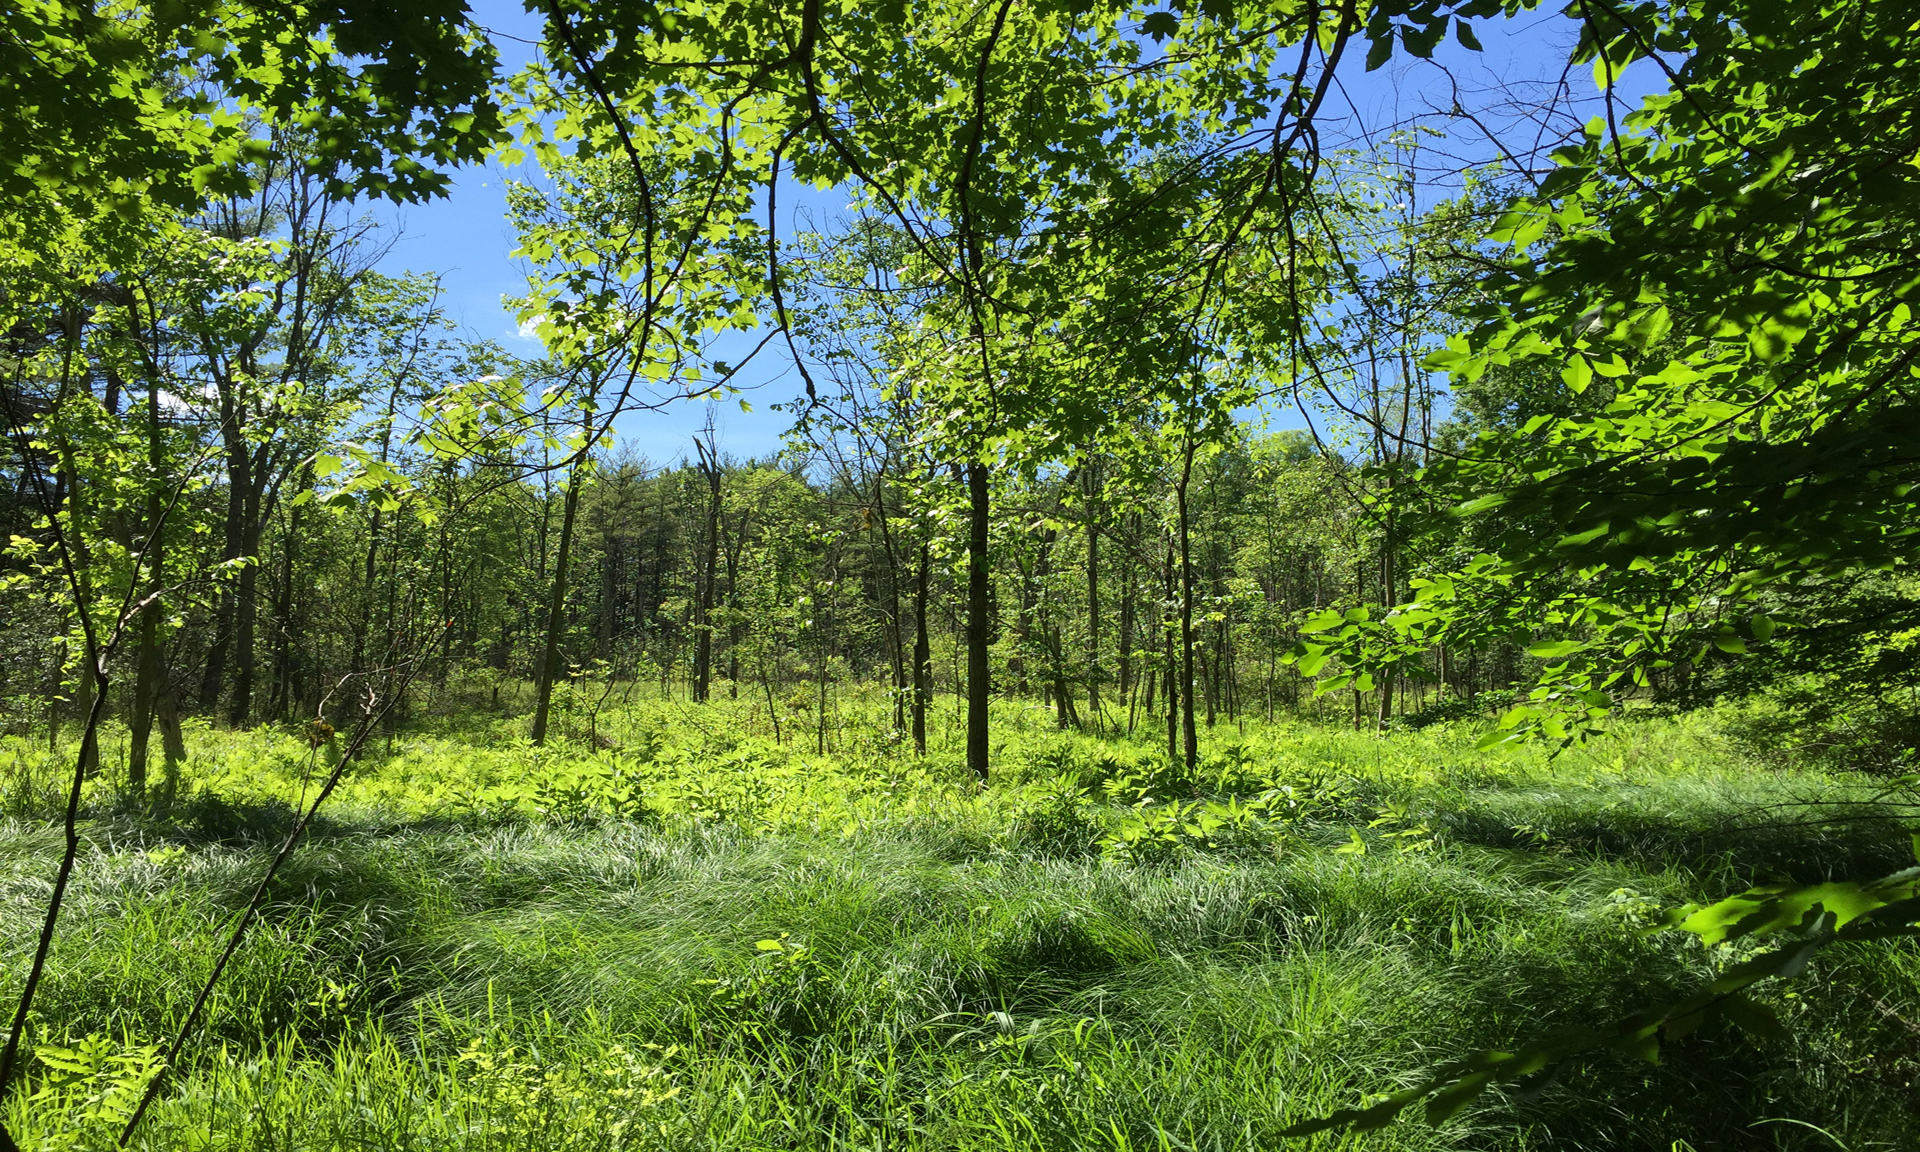 Cleveland Metroparks Awarded More than $4 Million to Acquire, Conserve and Protect 70+ Acre Property